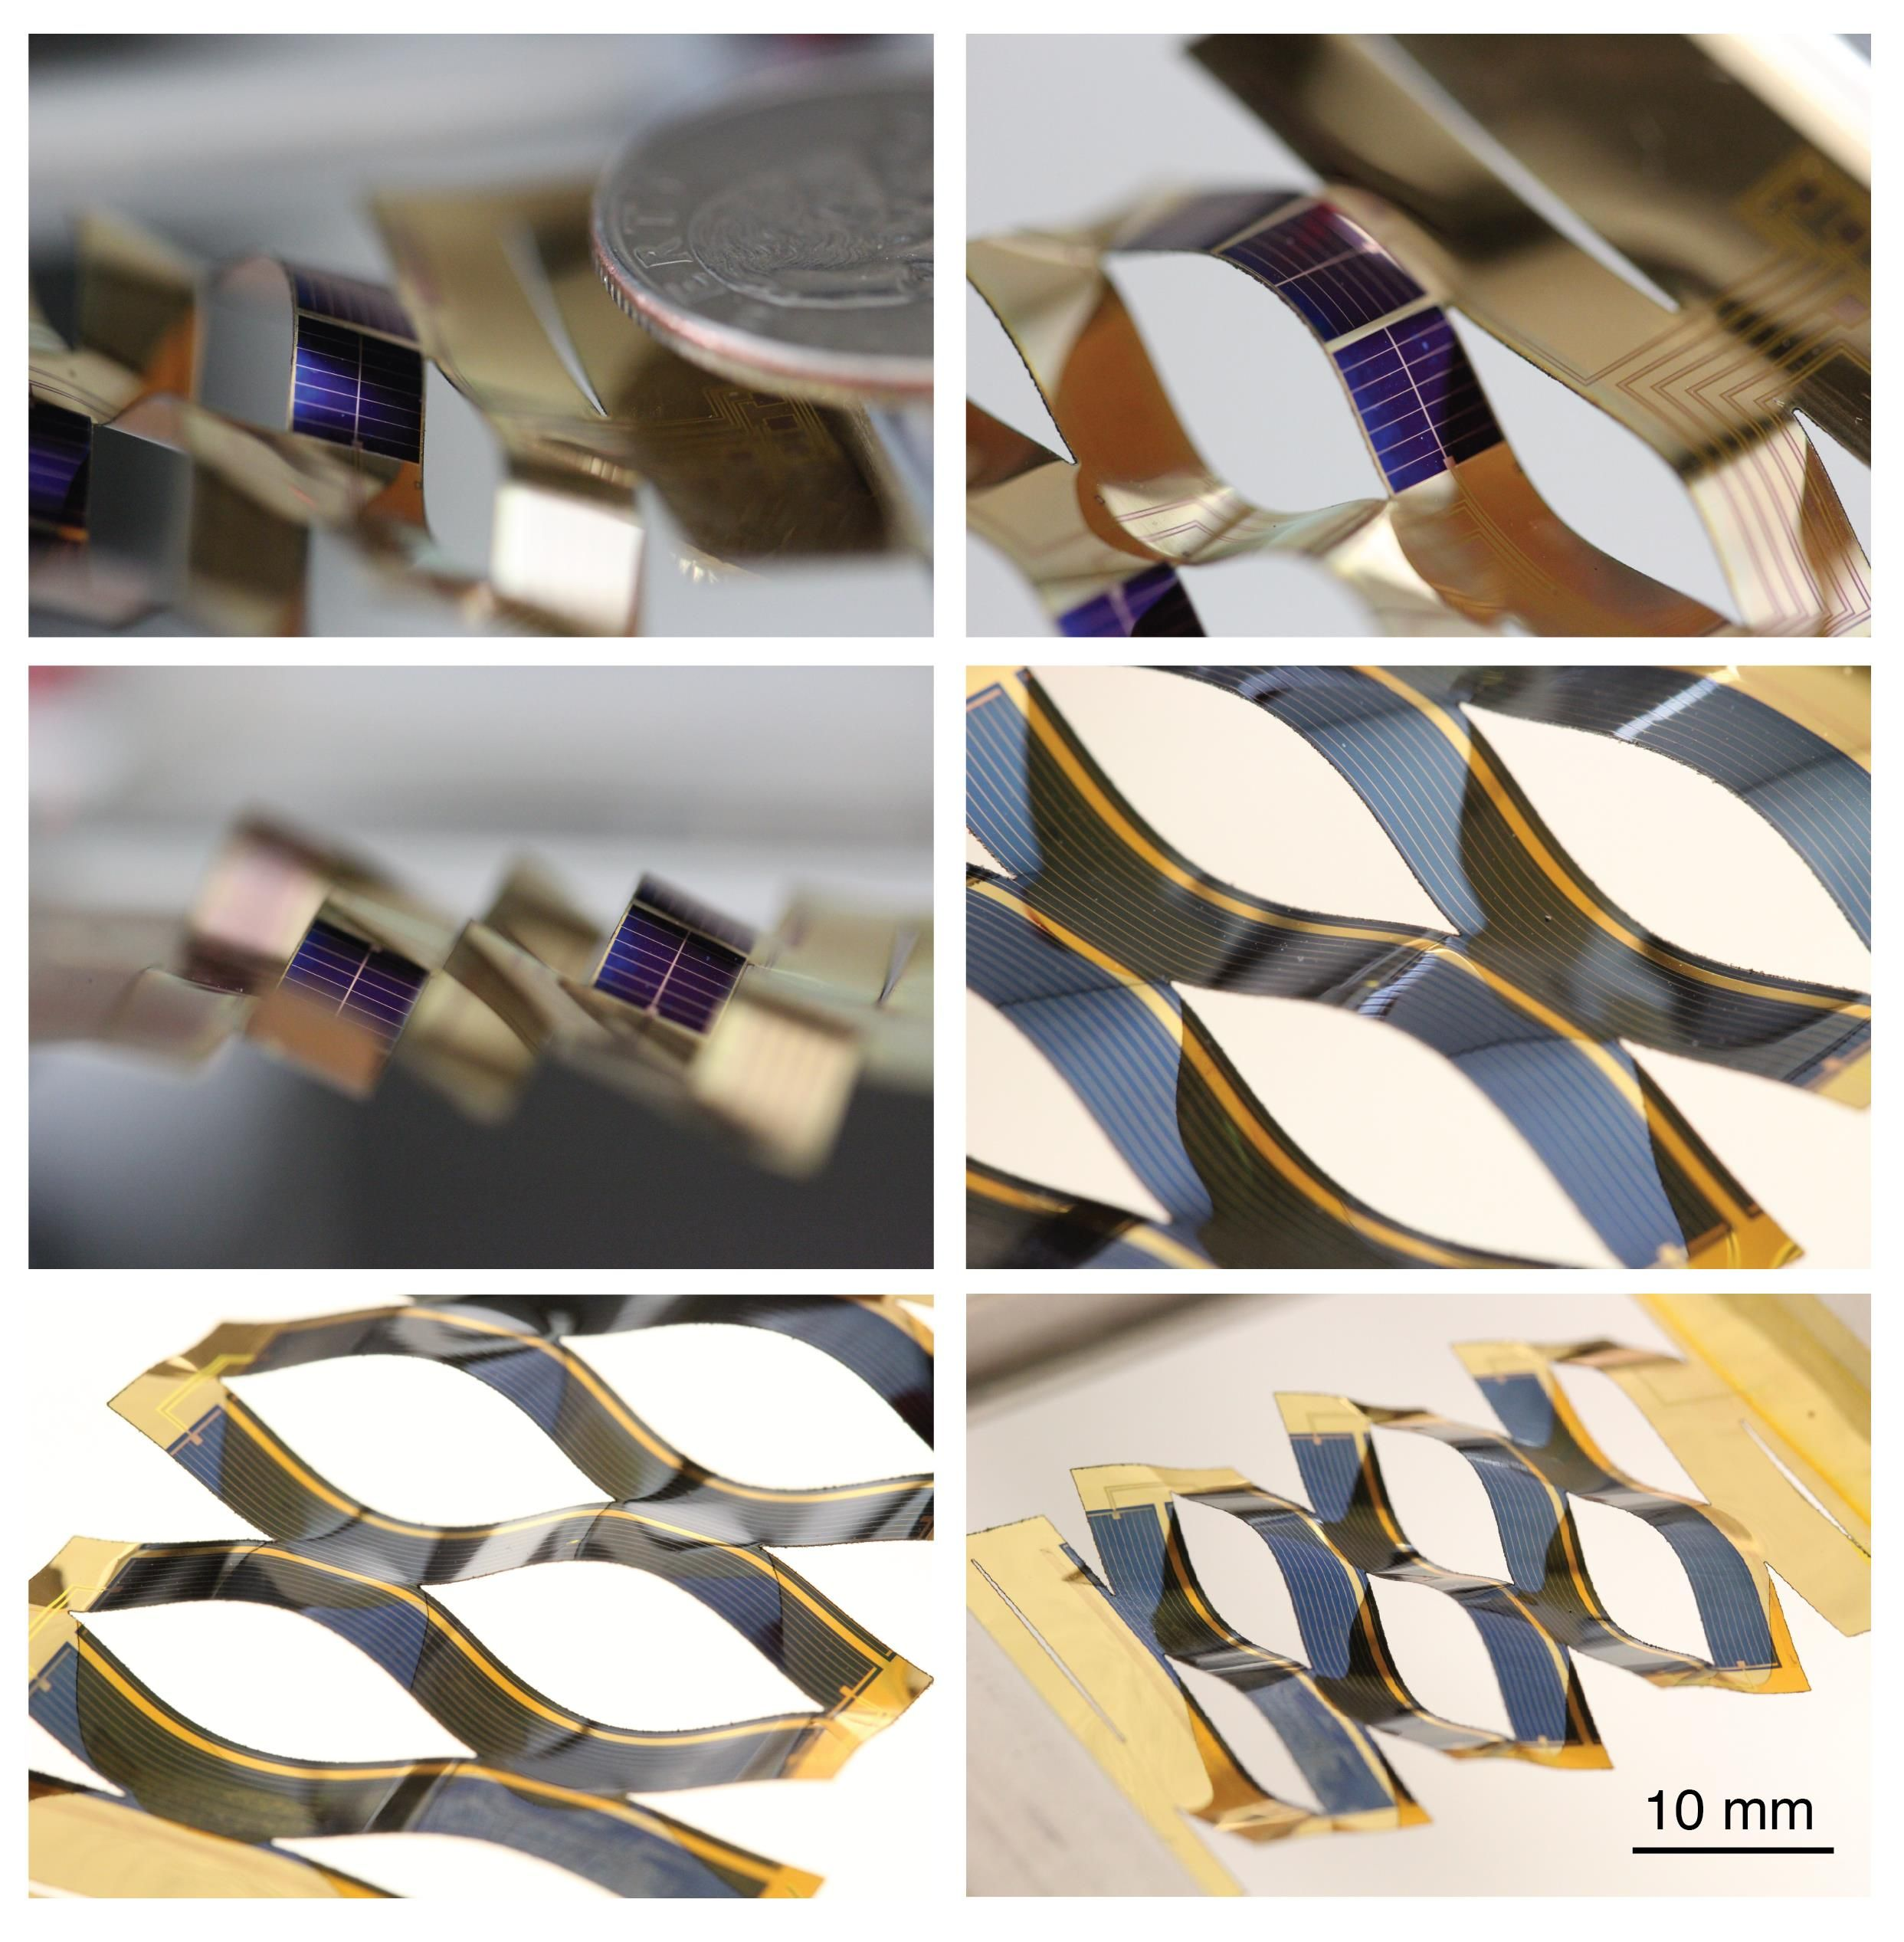 Japanese Paper Cutting Trick for Moving Solar Cells